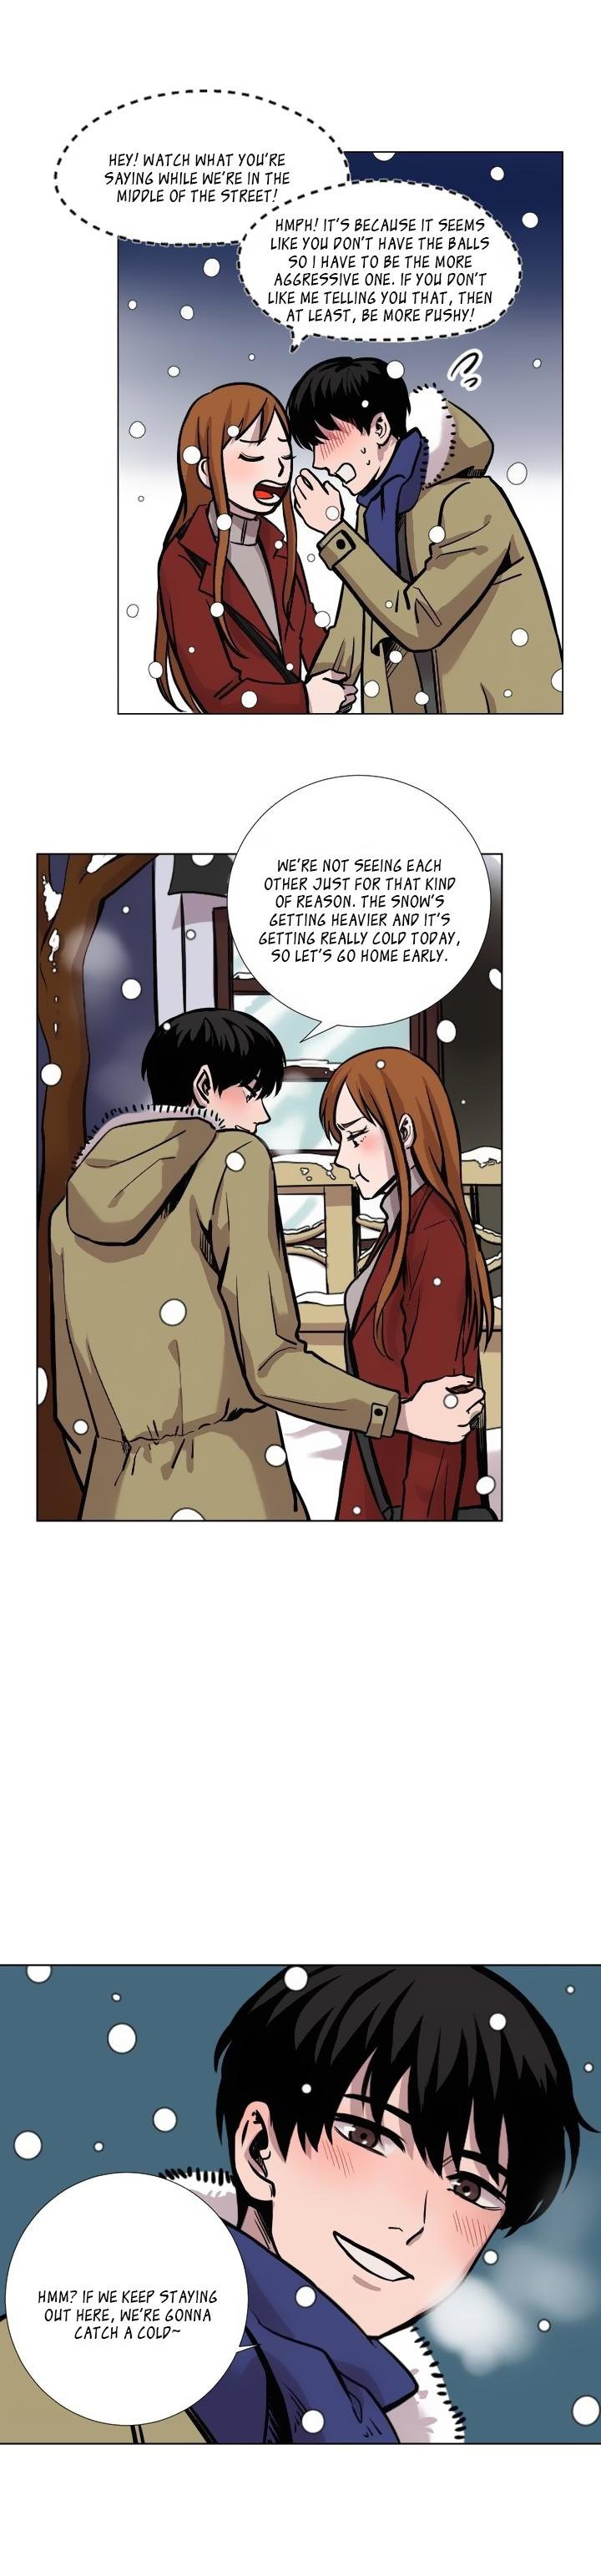 Their Circumstances (Sria) - Chapter 1